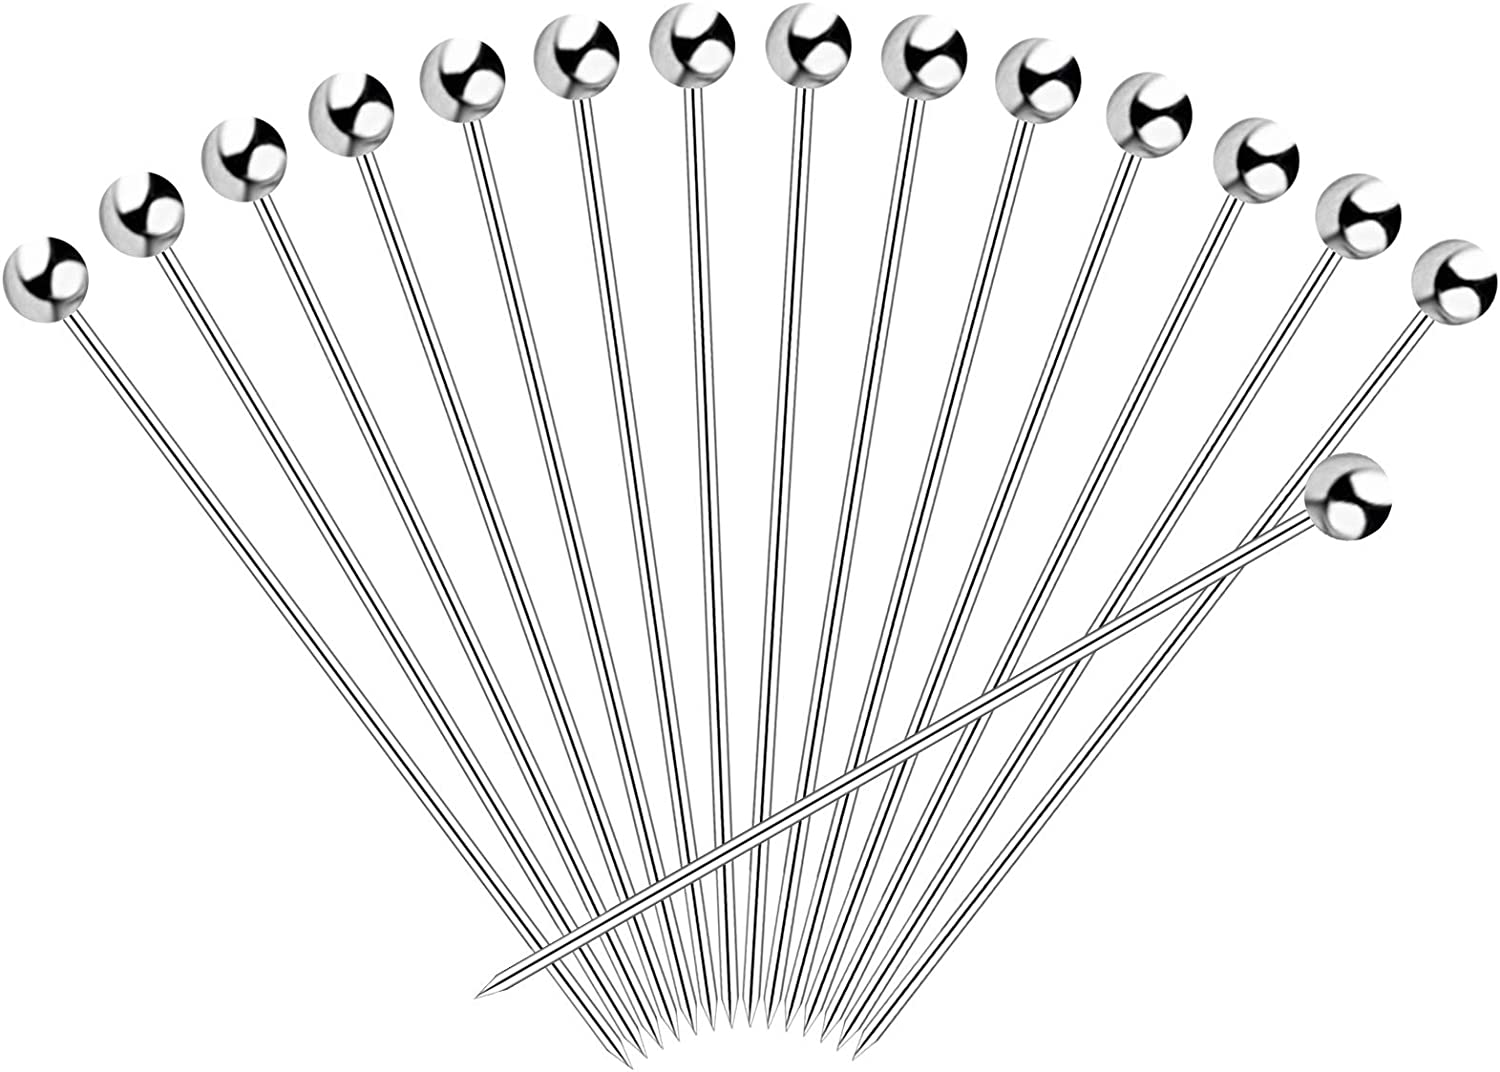 HEQUSigns 30PCS Stainless Steel Cocktail Picks,Reusable Metal Martini Picks Olives Appetizers Sandwich Cocktail Toothpicks for Wedding 4.3 Inches